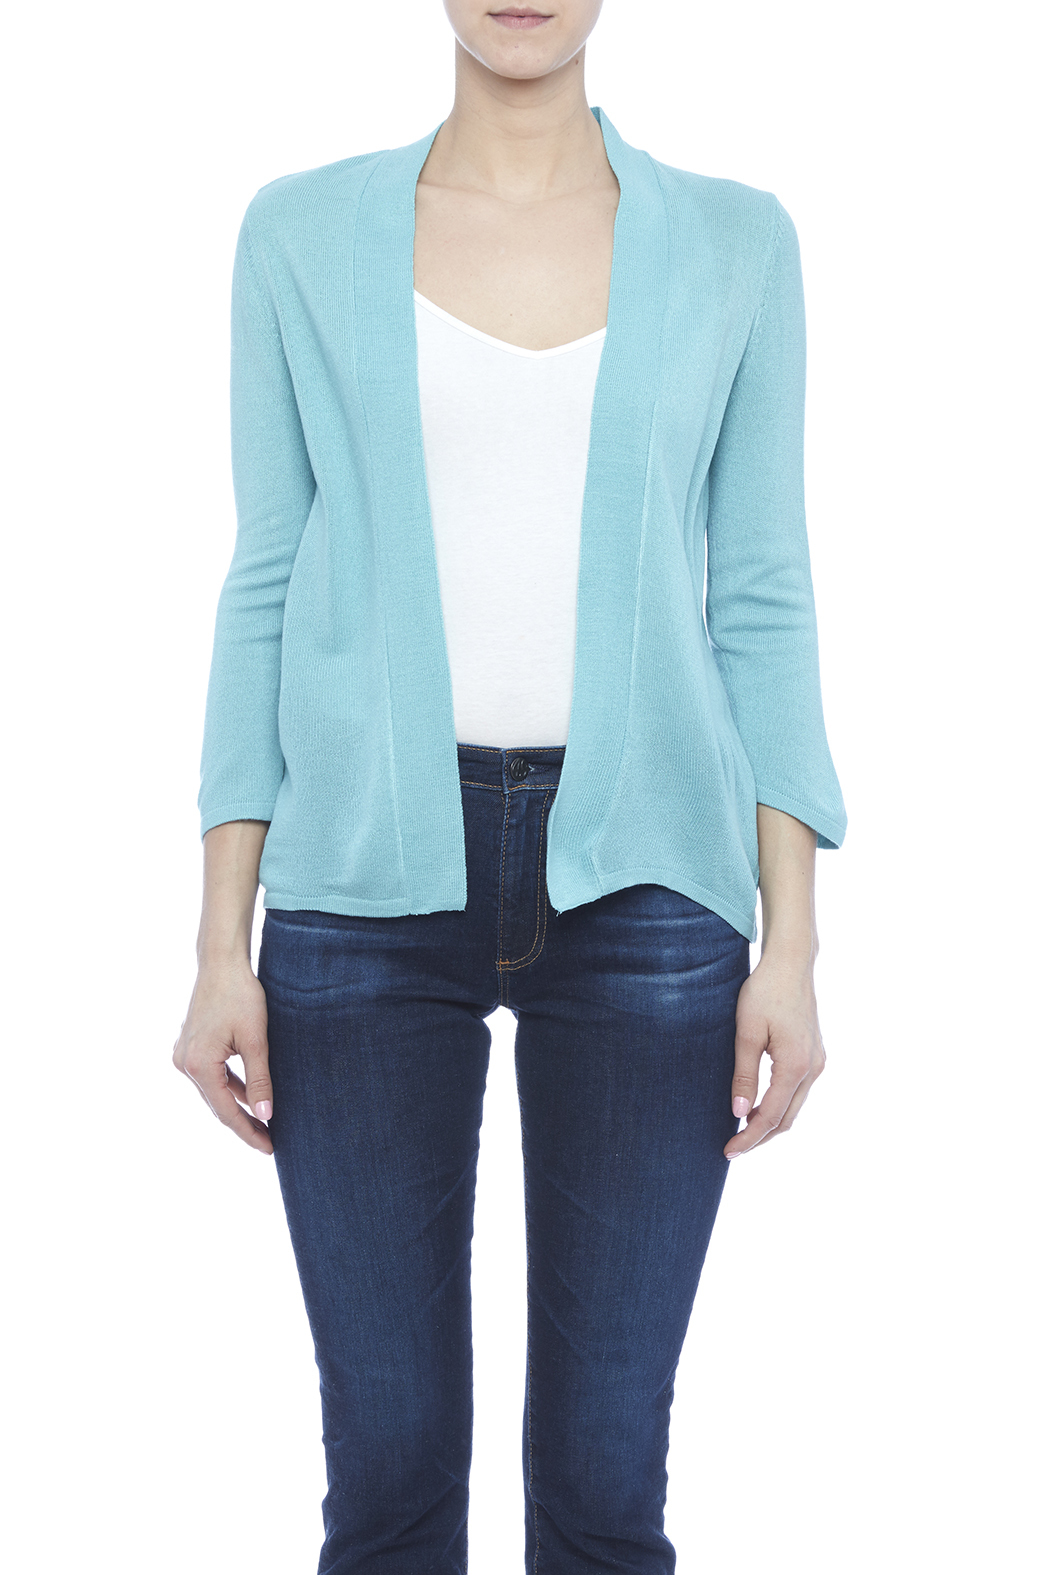 Simply Noelle Basic Cardigan - Side Cropped Image